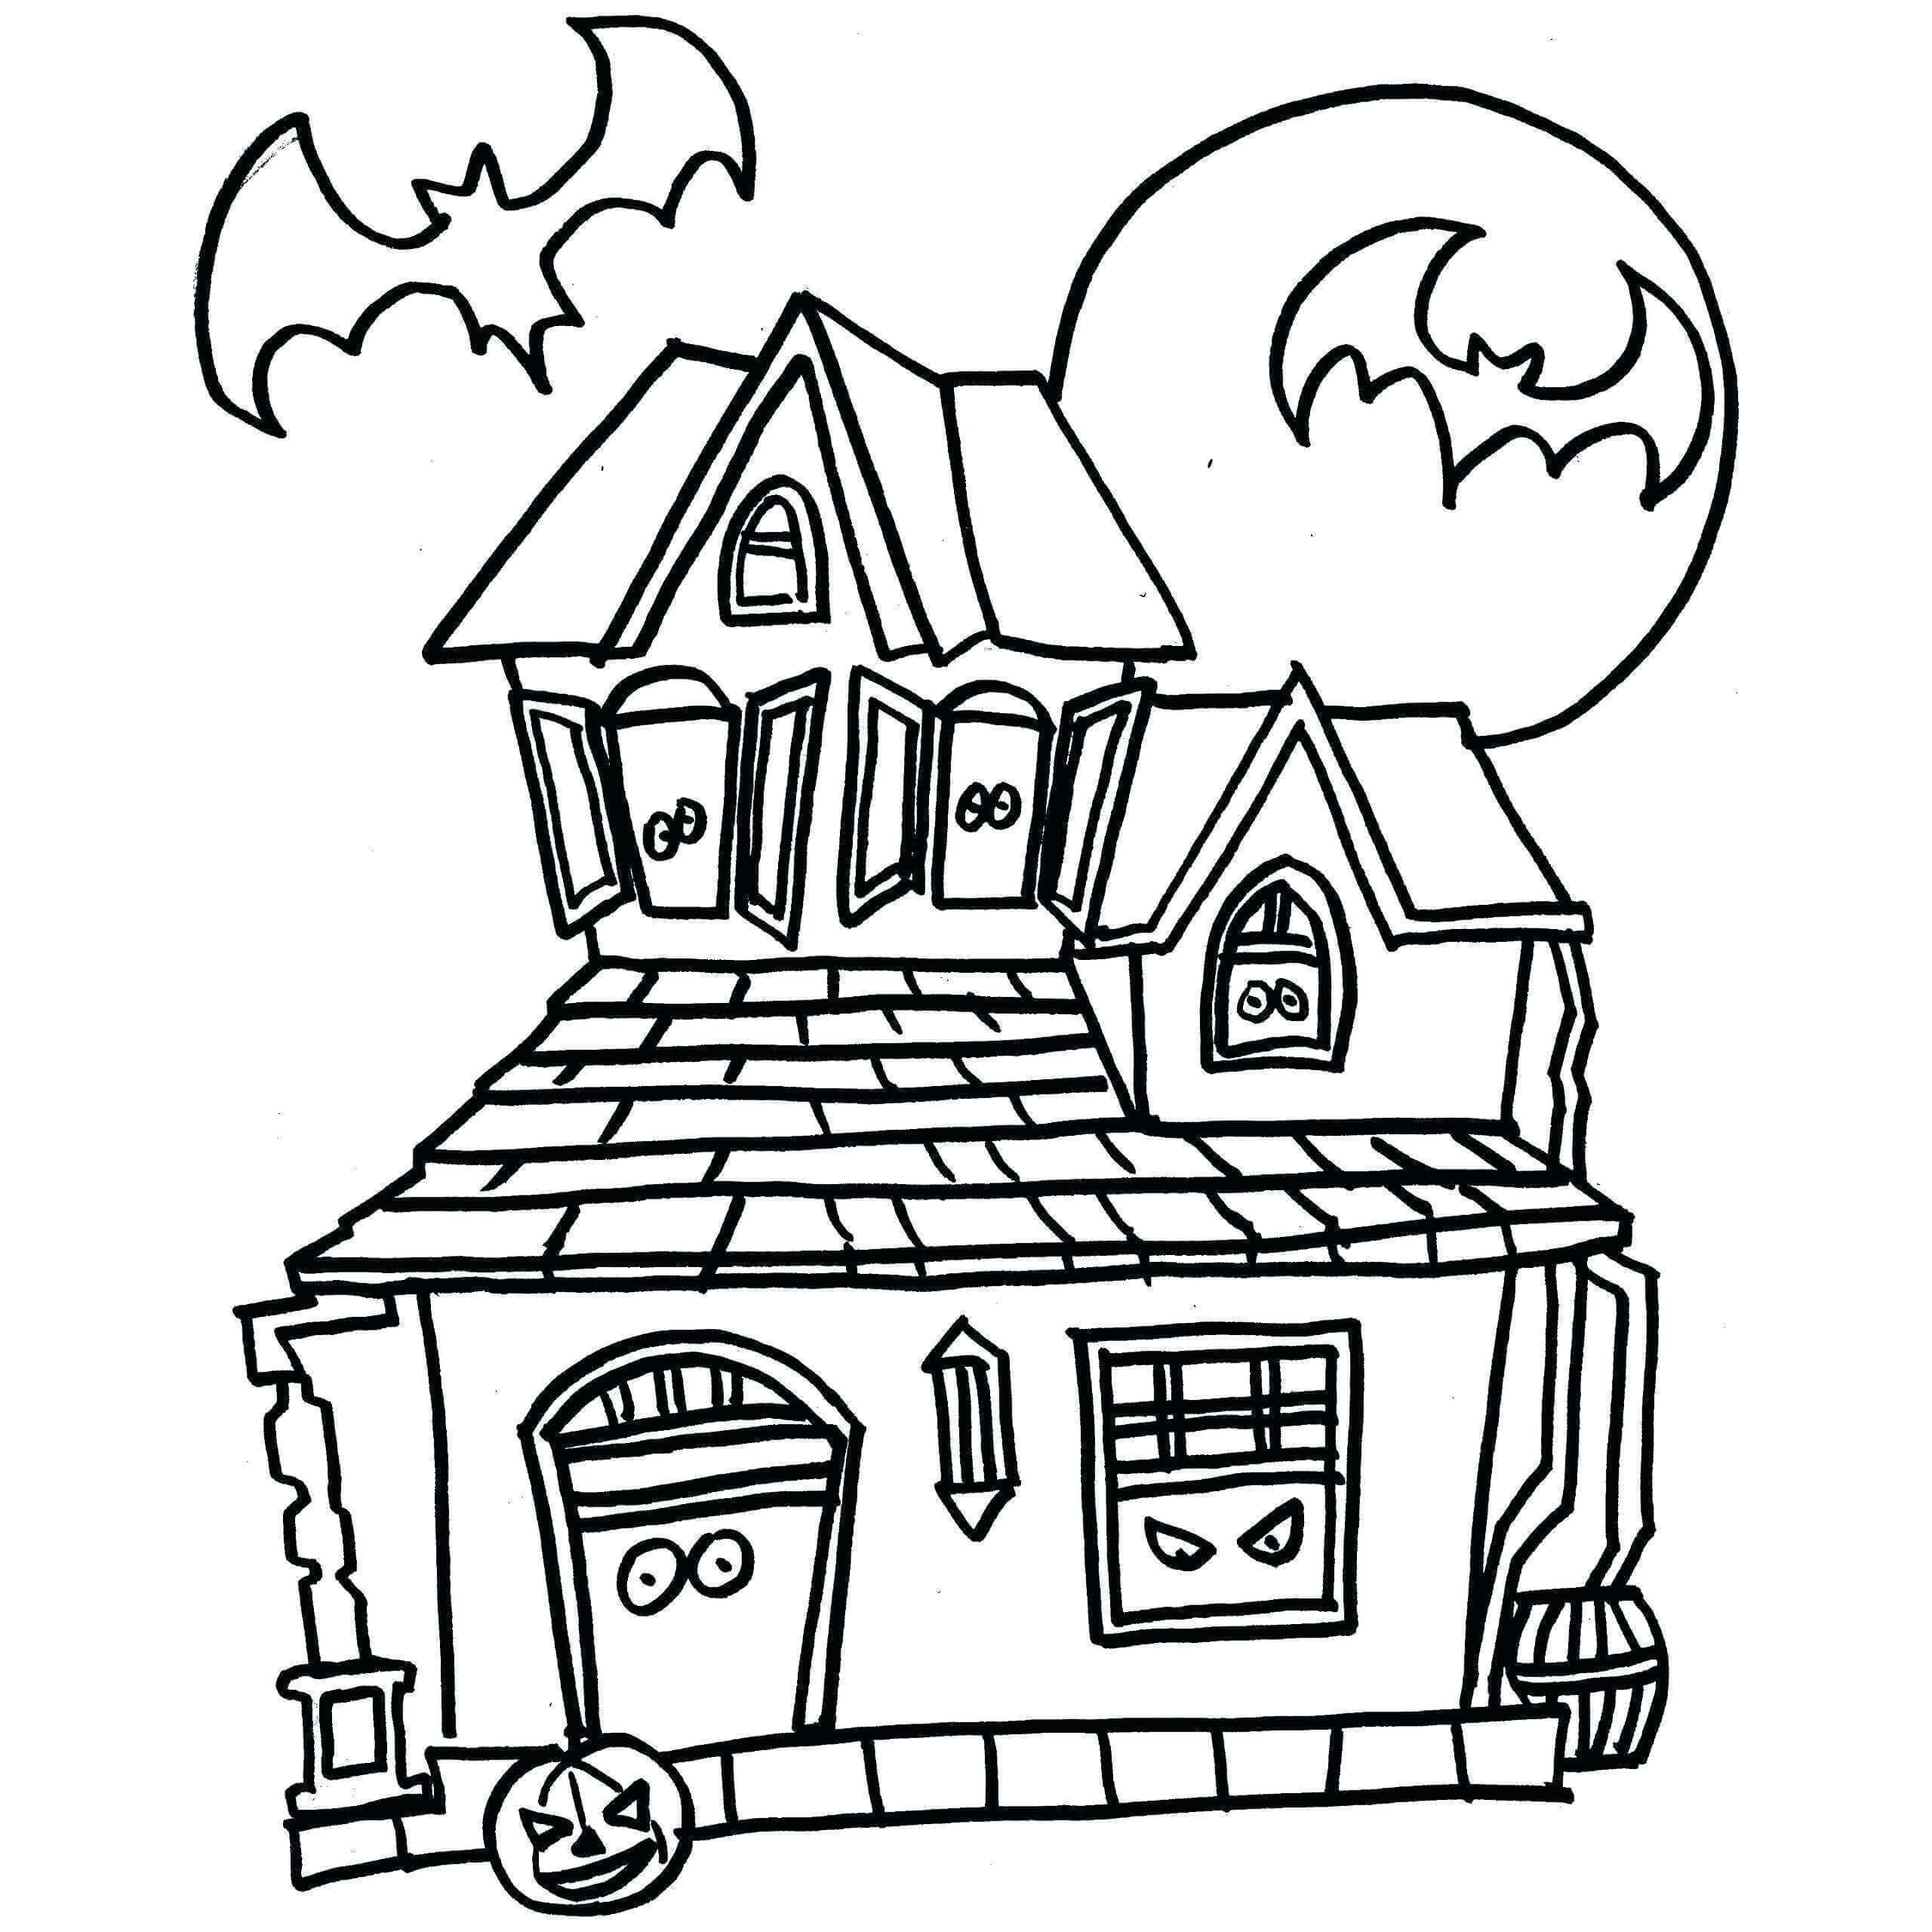 hq haunted house coloring free printable for kids art kits adults cover photos happy fall coloring pages Haunted House Coloring Page